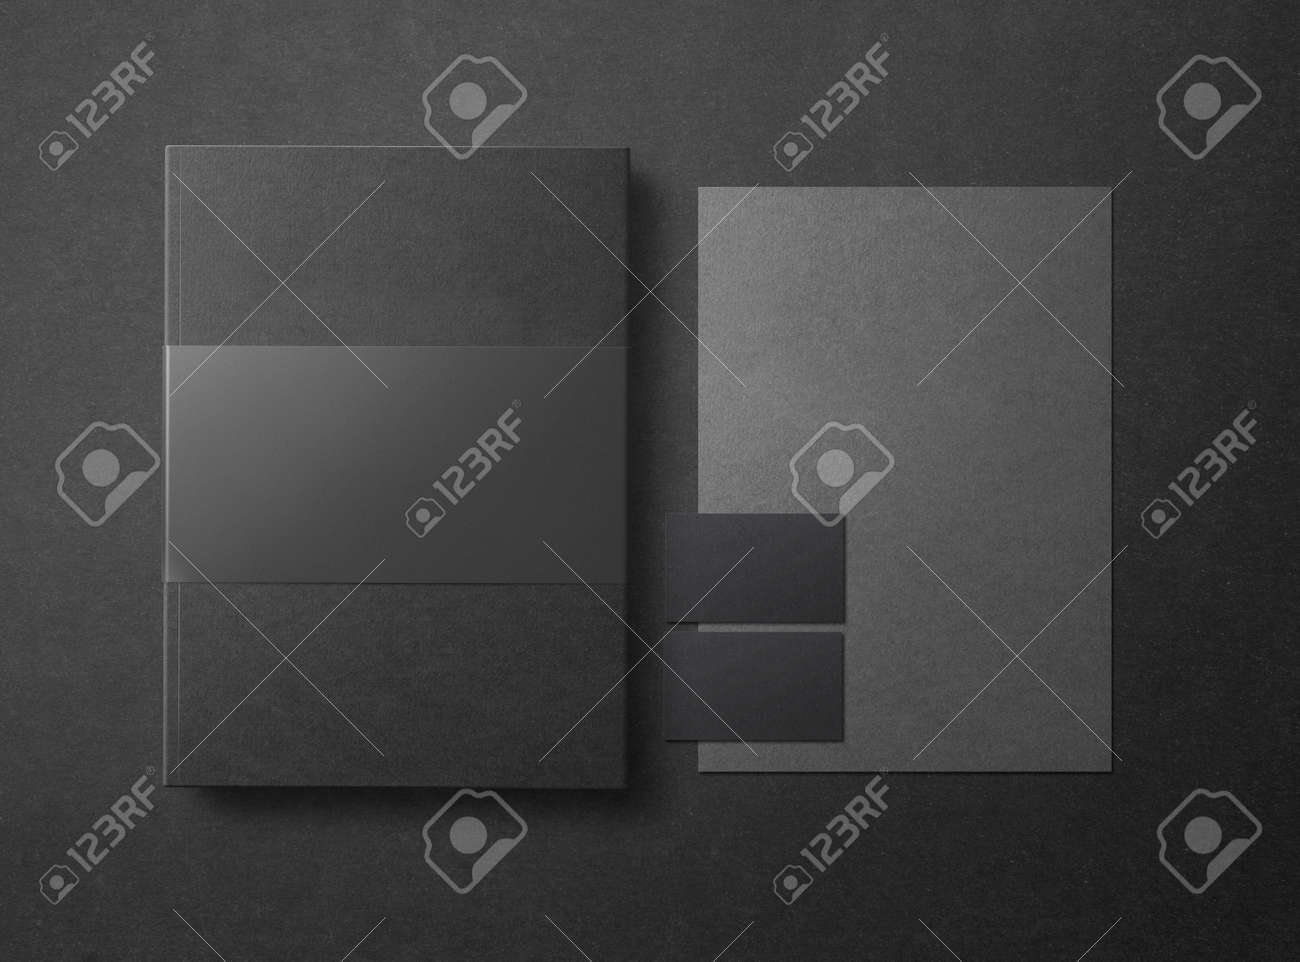 Mock-up. Template for branding identity. Blank objects for placing your design. Sheets of paper, business cards and folder. 3d illustration - 152369667